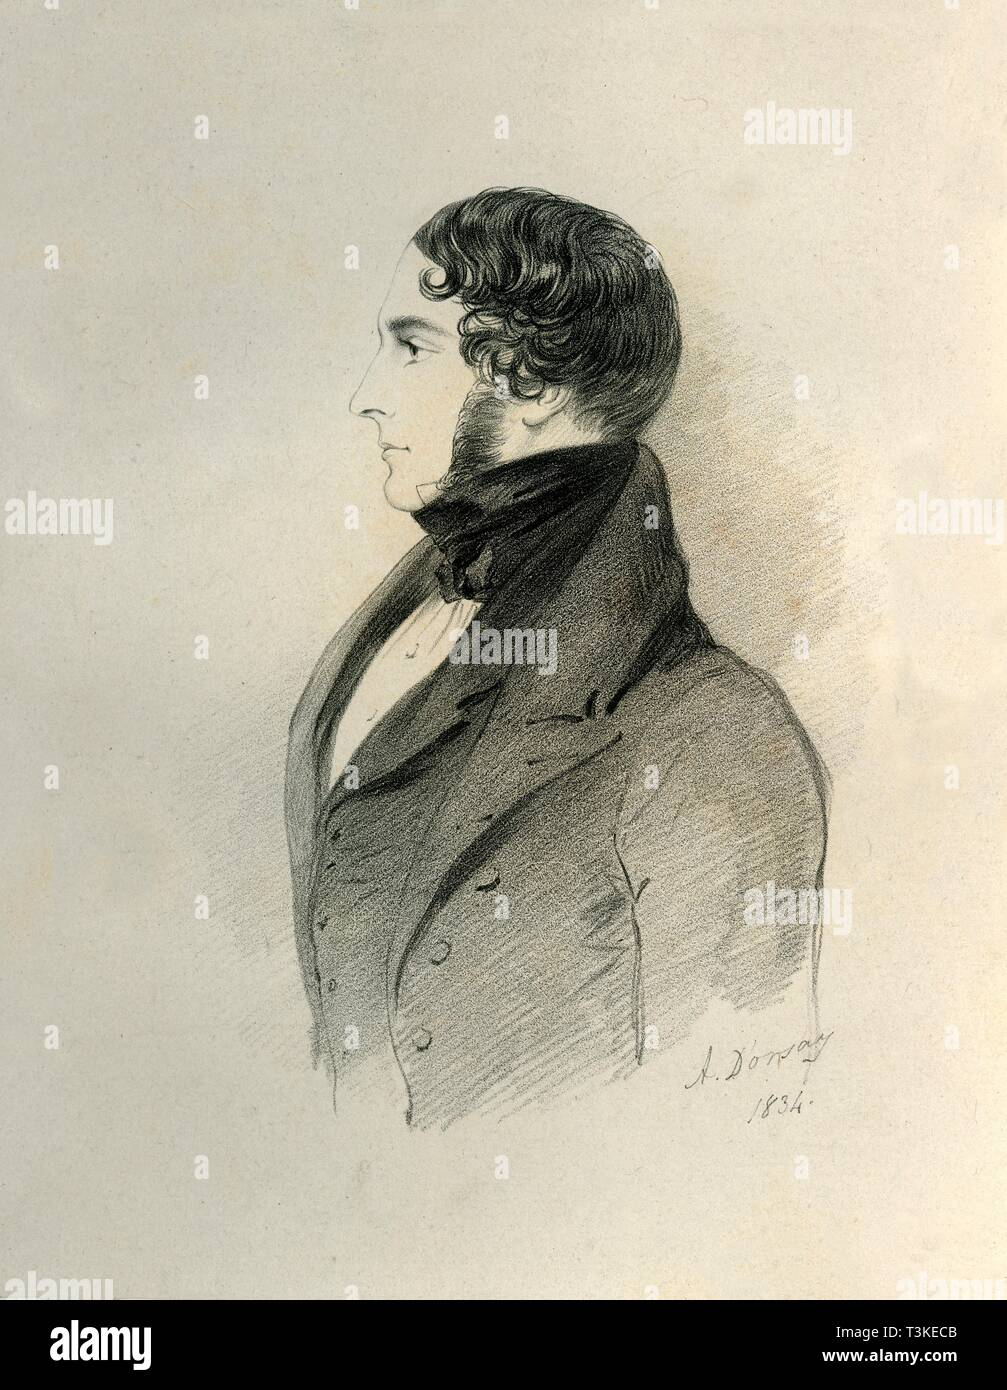 """Sir William Massey Stanley, 1834. Portrait of Sir William Stanley-Massey-Stanley, 10th Baronet, (c1806-1863), British landowner and Conservative politician. From """"Portraits by Count D'Orsay"""", an album assembled by Lady Georgiana Codrington. [1850s] - Stock Image"""